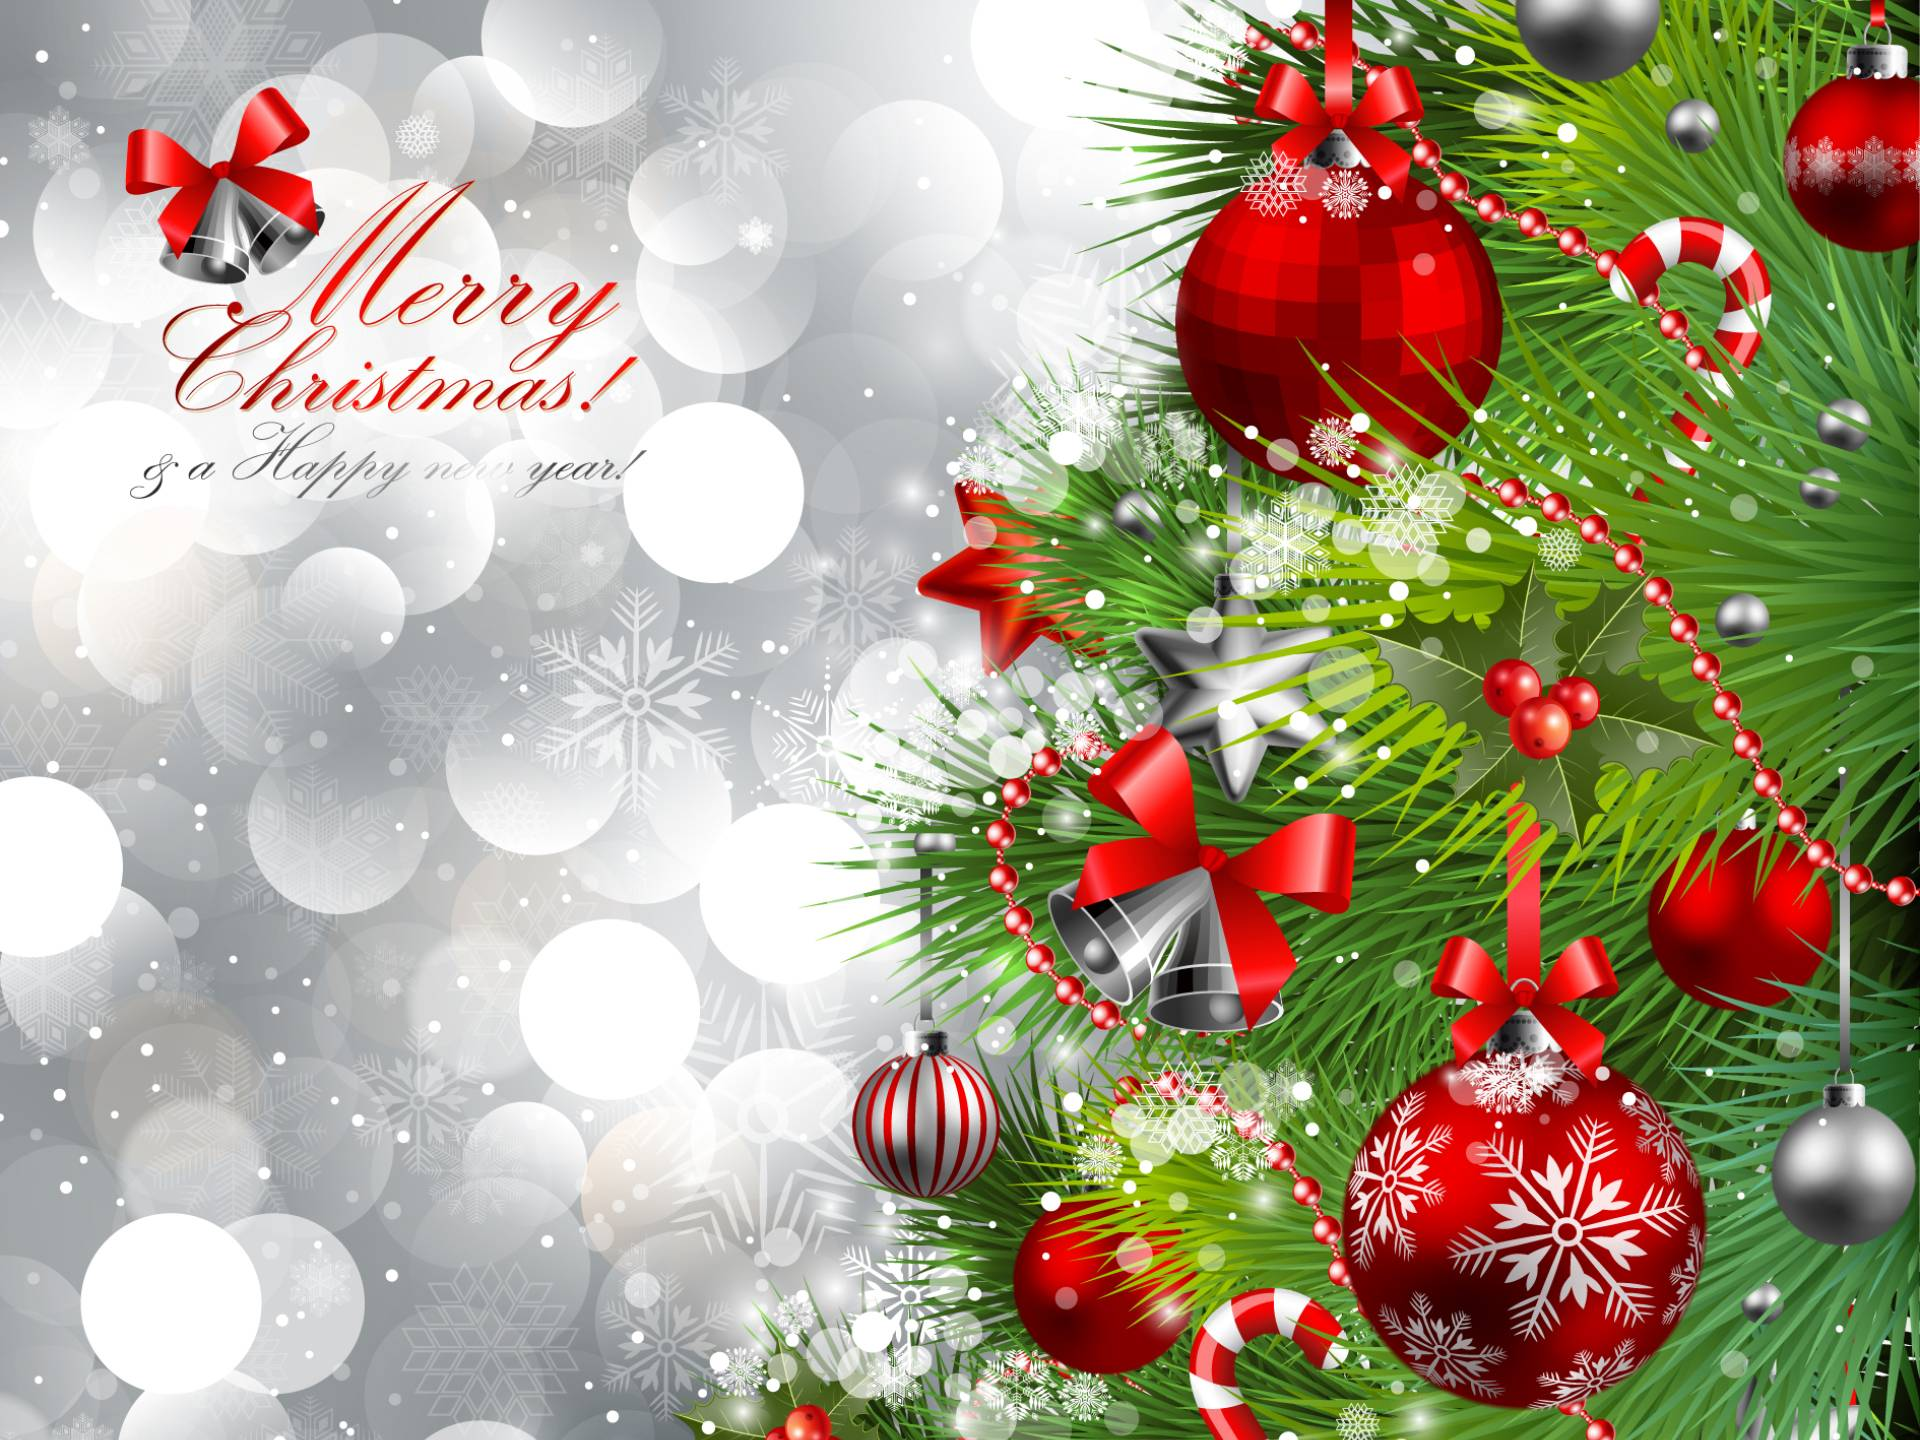 Animated Merry Christmas Desktop HD Wallpaper